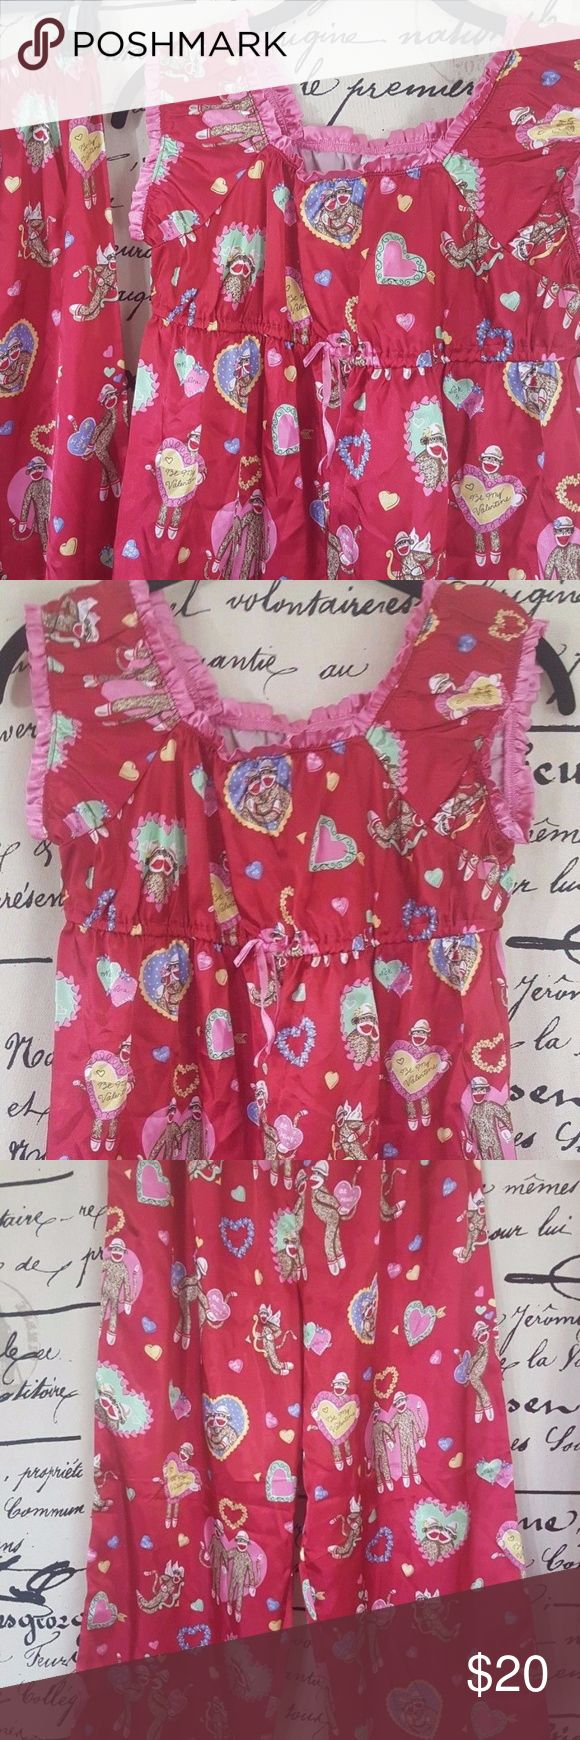 Nick and Nora Love Monkey Sleepwear Nick and Nora Girl Sleepwear Sock Monkey Red Pink Valentine Love PJs Size 14 16   Size: 14-16  Measurements: Underarm to Underarm 15 Inches, Length 23 Inches, Waist 22 Inches, Inseam 26 1/2 Inches Nick and Nora Pajamas Pajama Sets